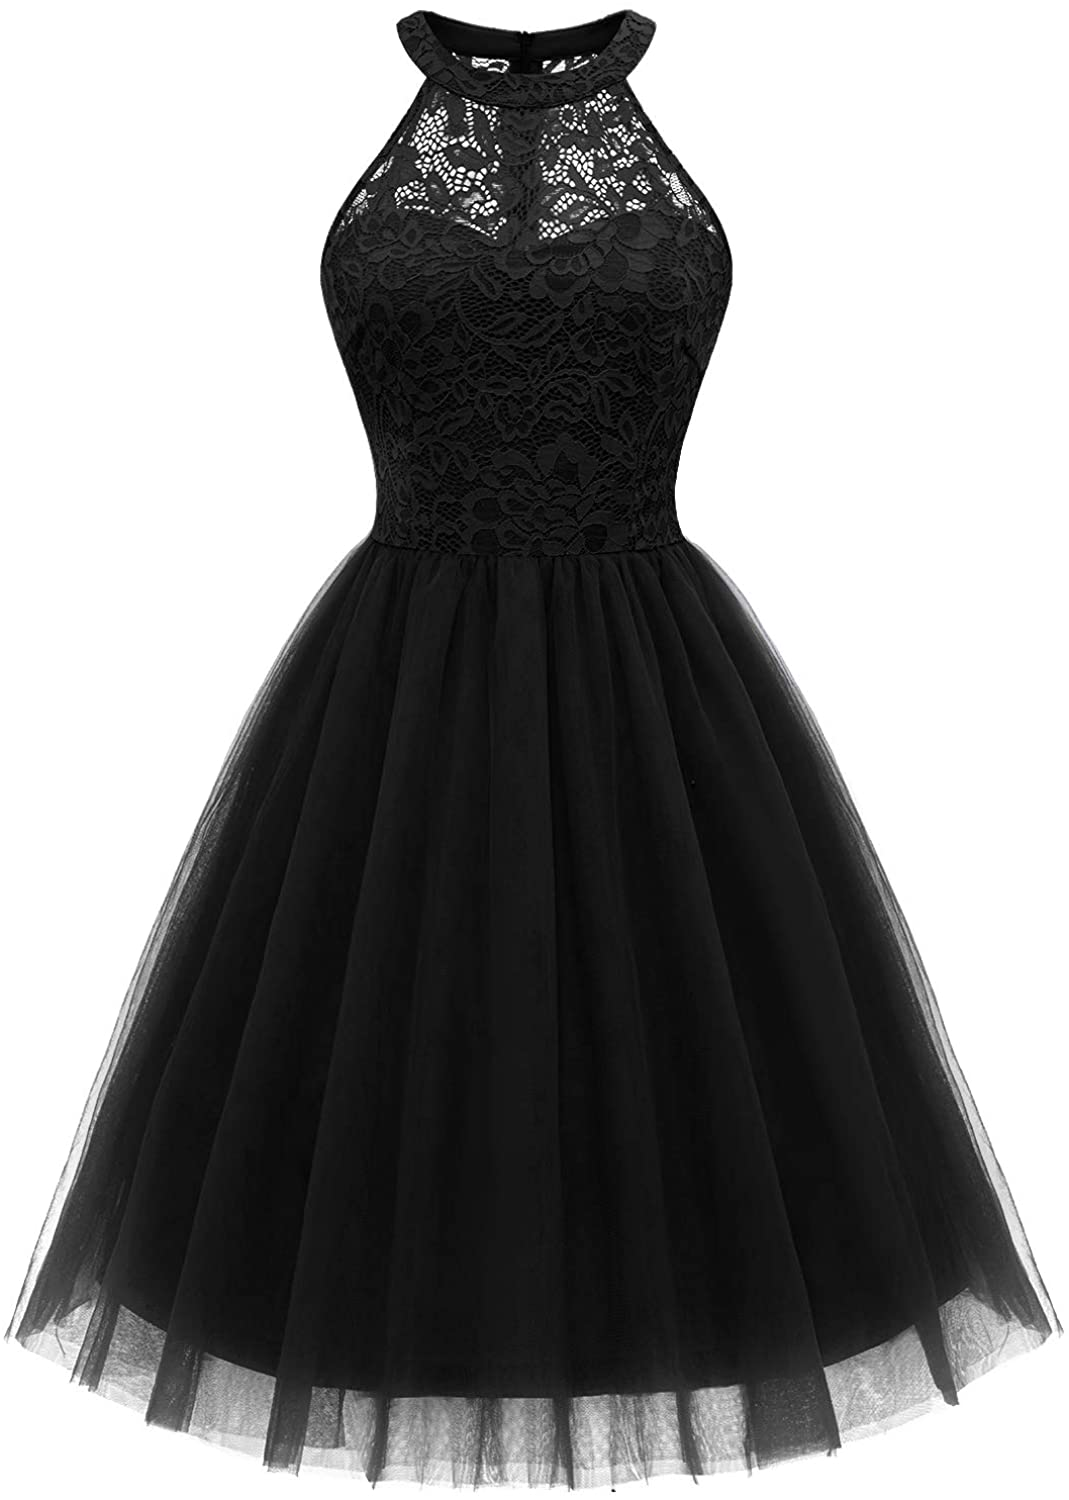 Dressystar Women's Short Halter Cocktail Party Dress Lace Tulle Prom Gown